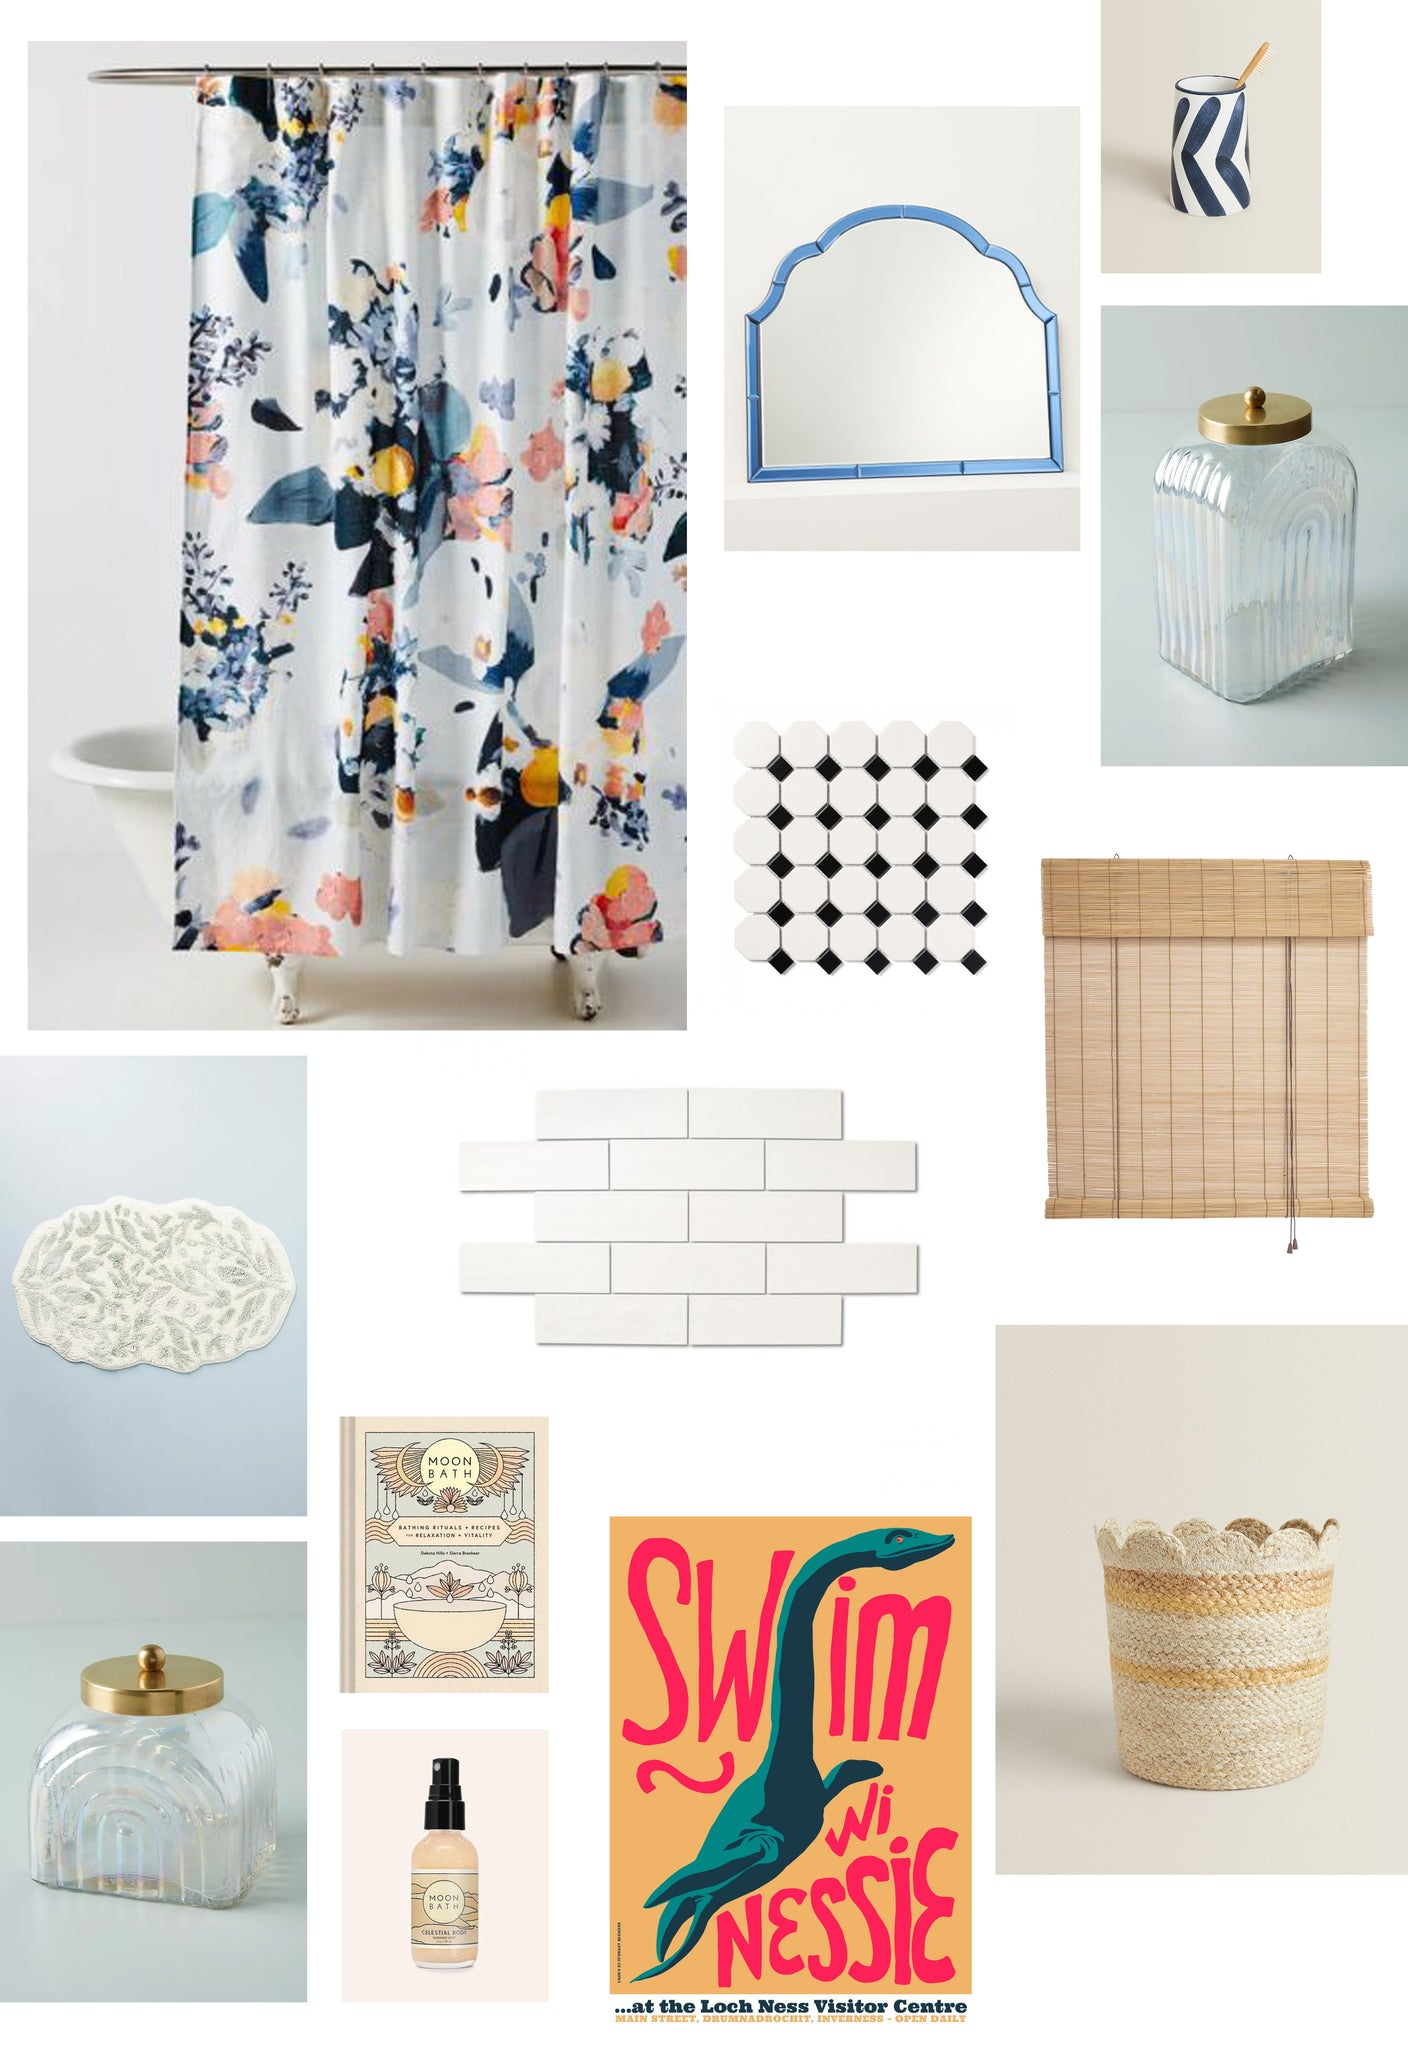 Casa Connelly: Our Master Bathroom Plans